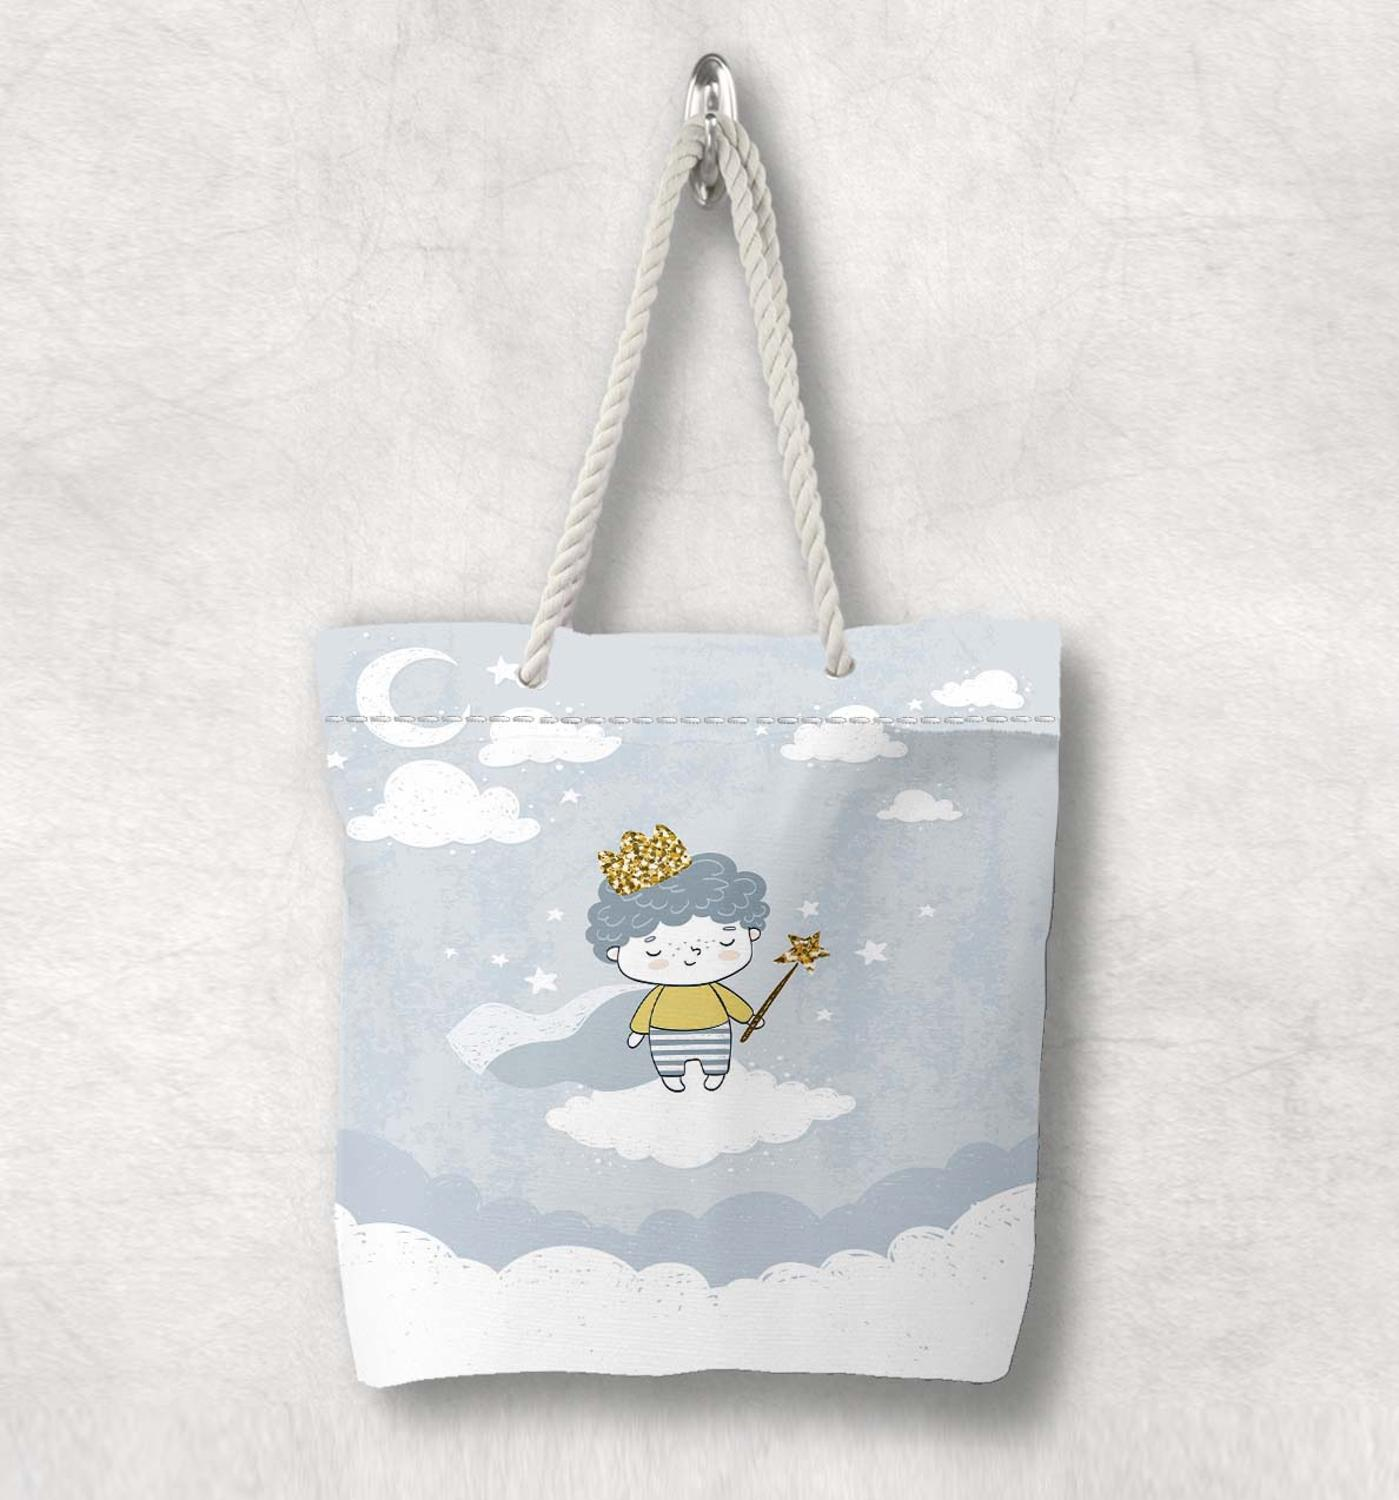 Else Gray White Clouds Moon Little Prince New Fashion White Rope Handle Canvas Bag  Cartoon Print Zippered Tote Bag Shoulder Bag